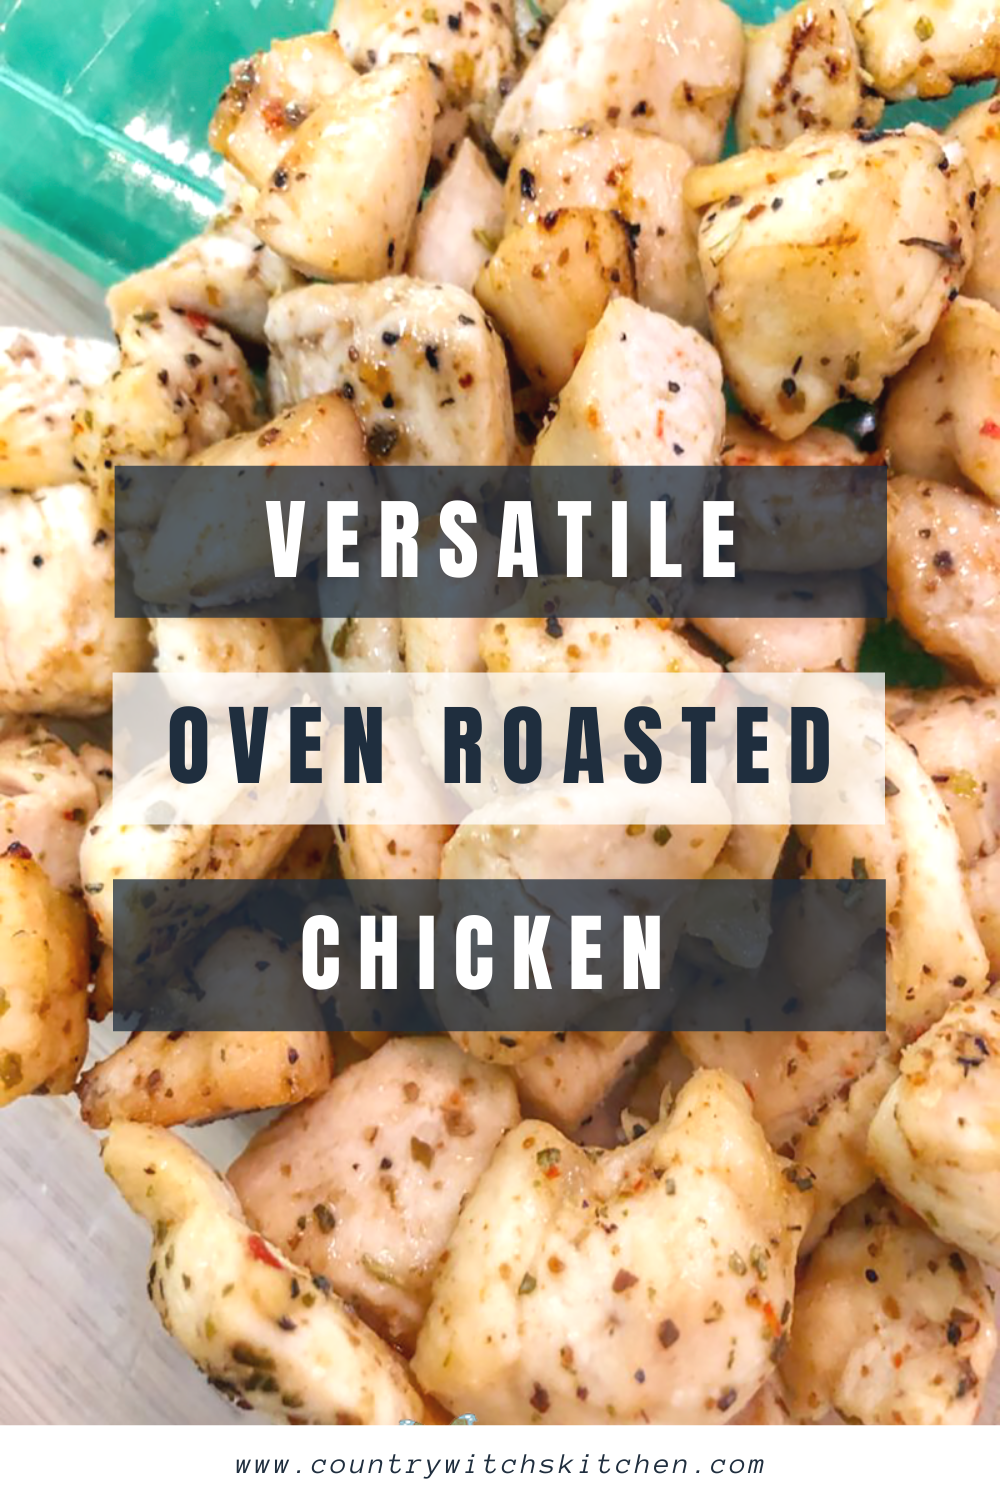 This quick and easy oven roasted chicken breast recipe is a great ingredient to have on hand for salads, wraps, and tons of other healthy recipes! #roastedchicken #lunch #mealprep #healthyrecipe #easychickenrecipe